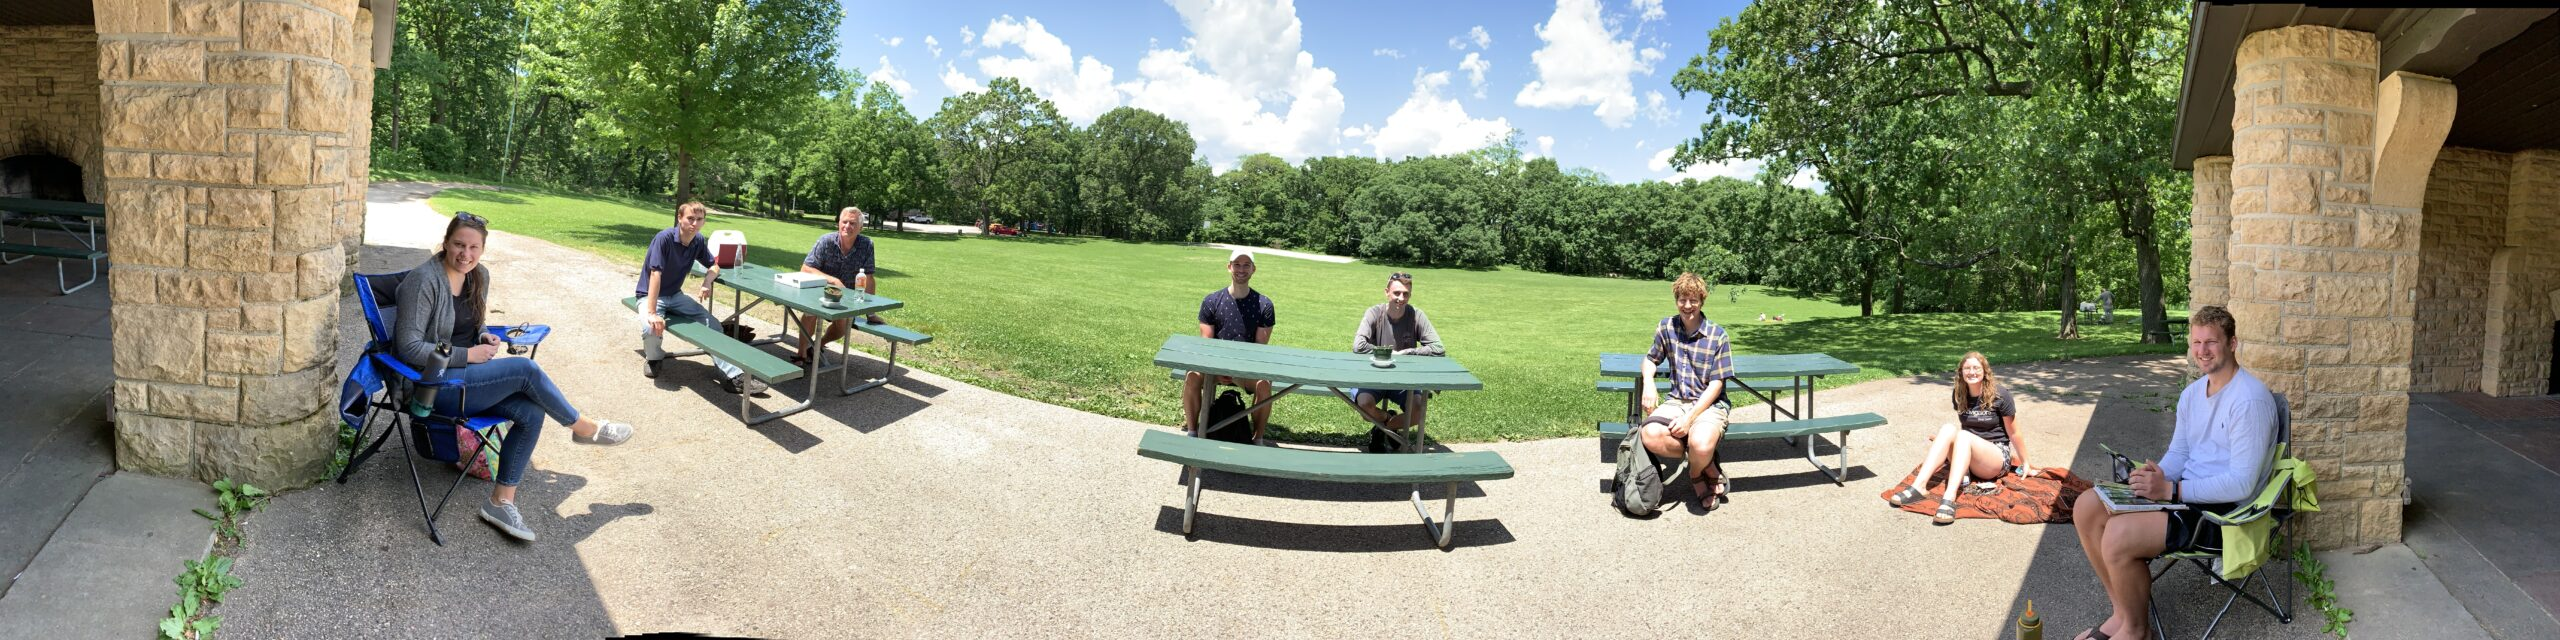 JRG celebrates Braeden's graduation with a socially distant lunch in the park, Jahn Research Group, Molly Jahn